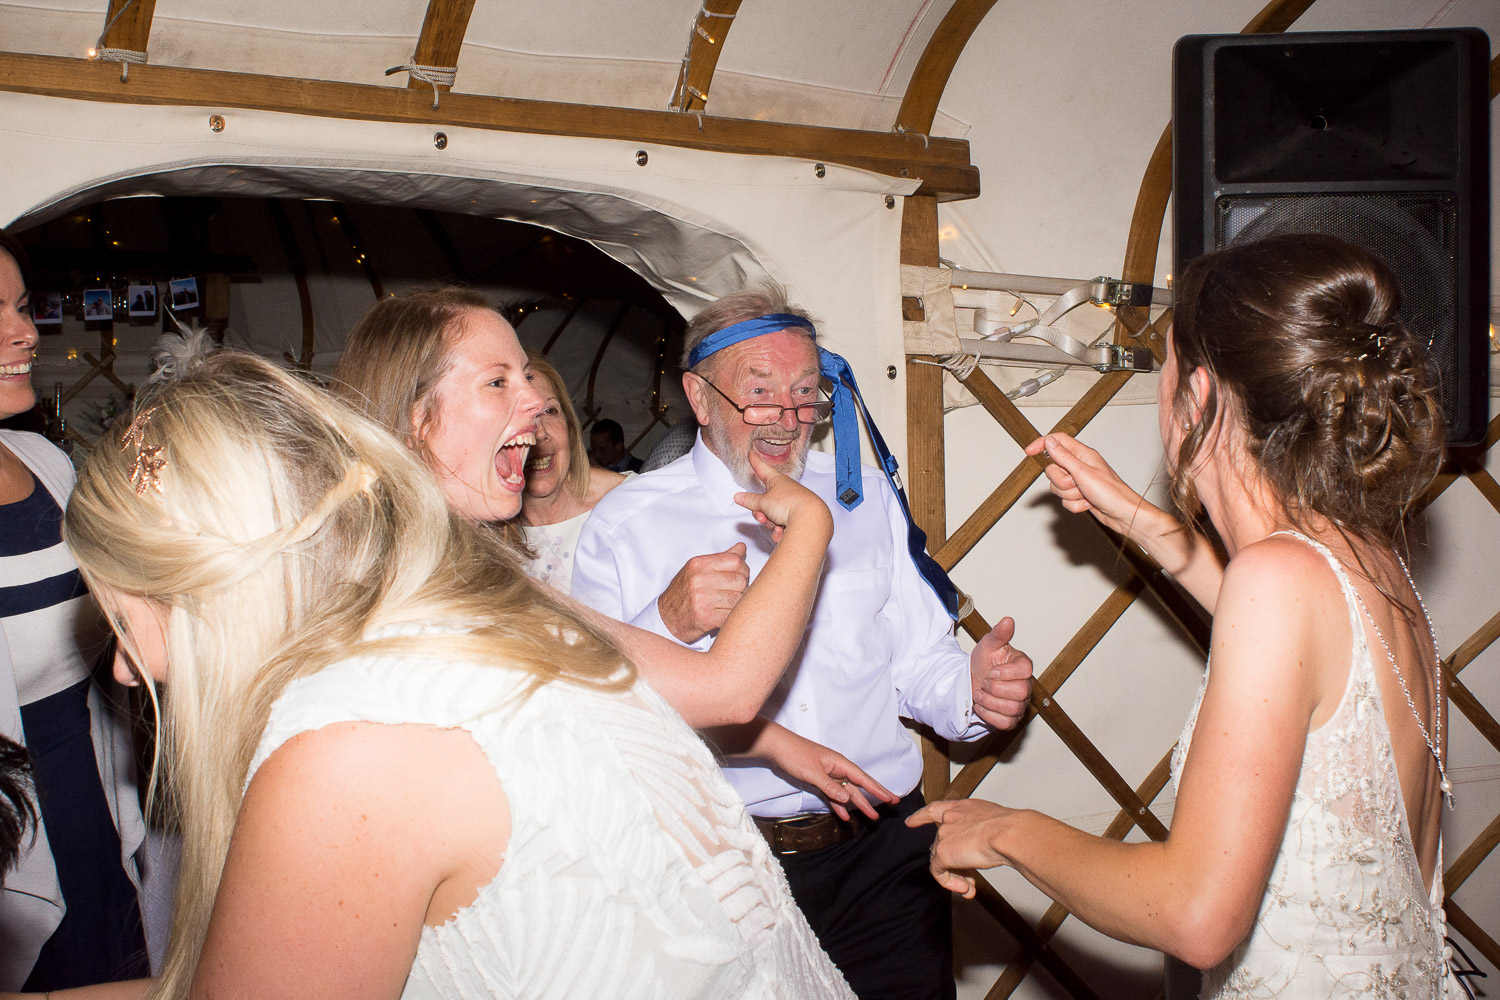 father of the bride with his tie on his head at wedding yurts wedding in leicestershire